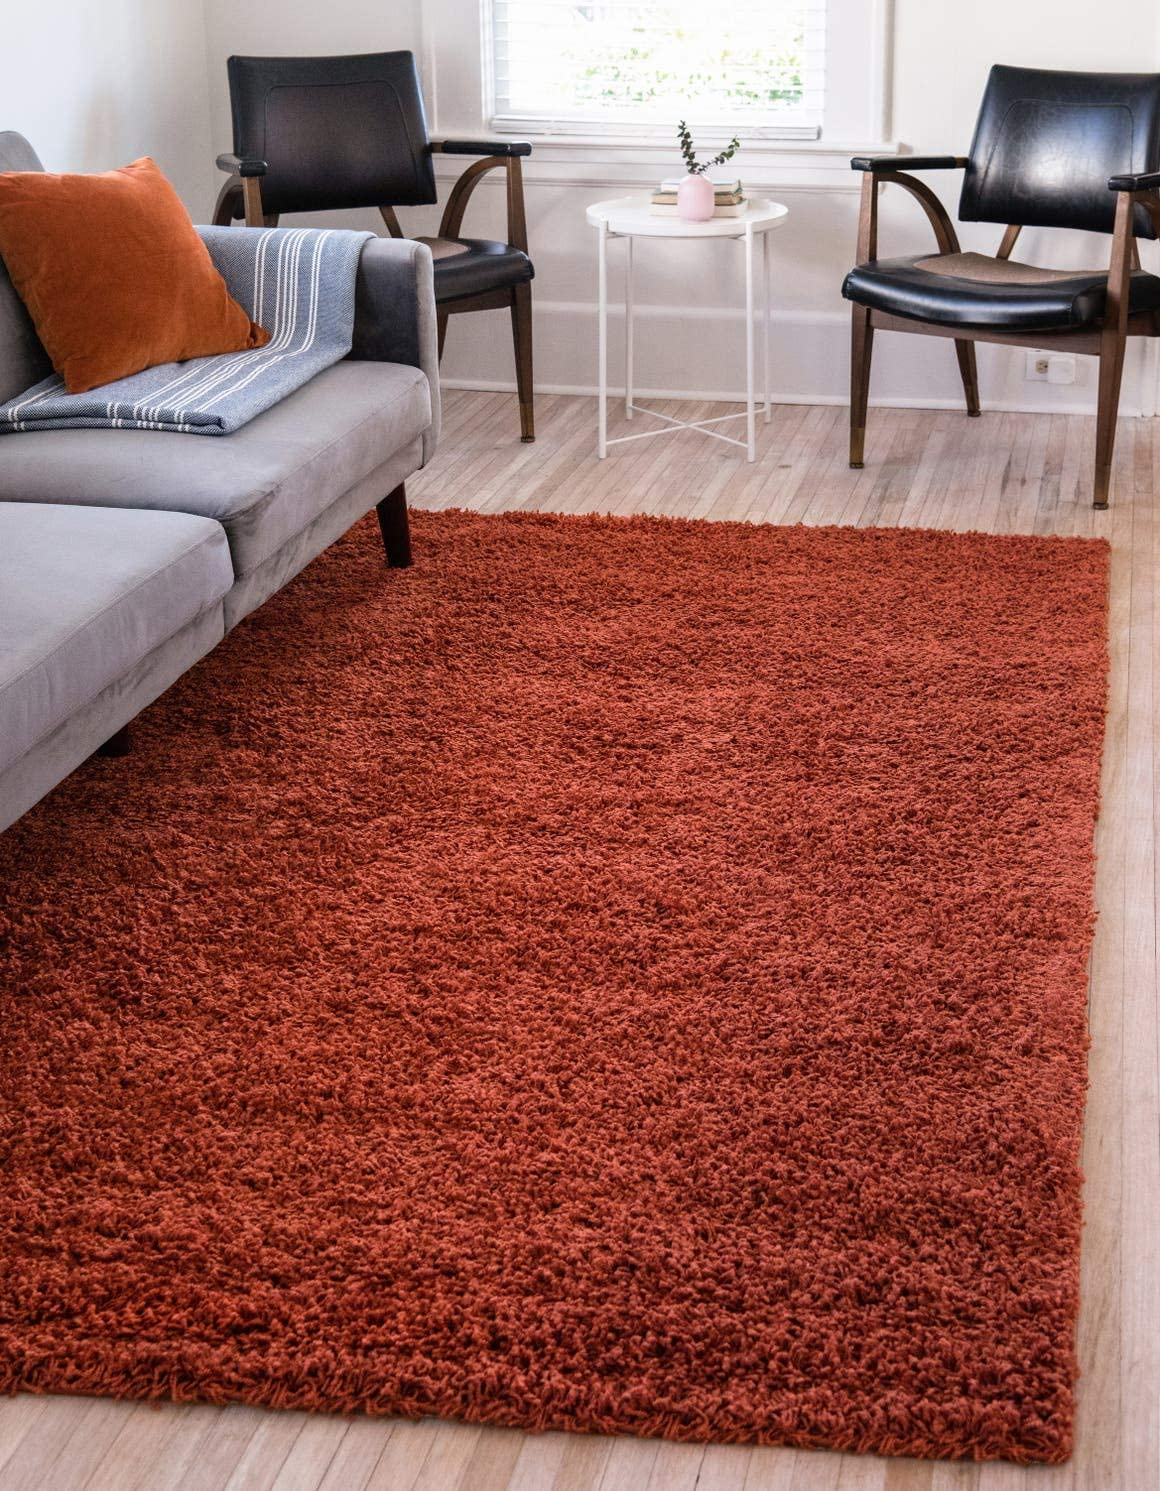 Unique Loom Solo Solid Shag Collection Modern Plush Terracotta Area Rug (3' 3 x 5' 3)